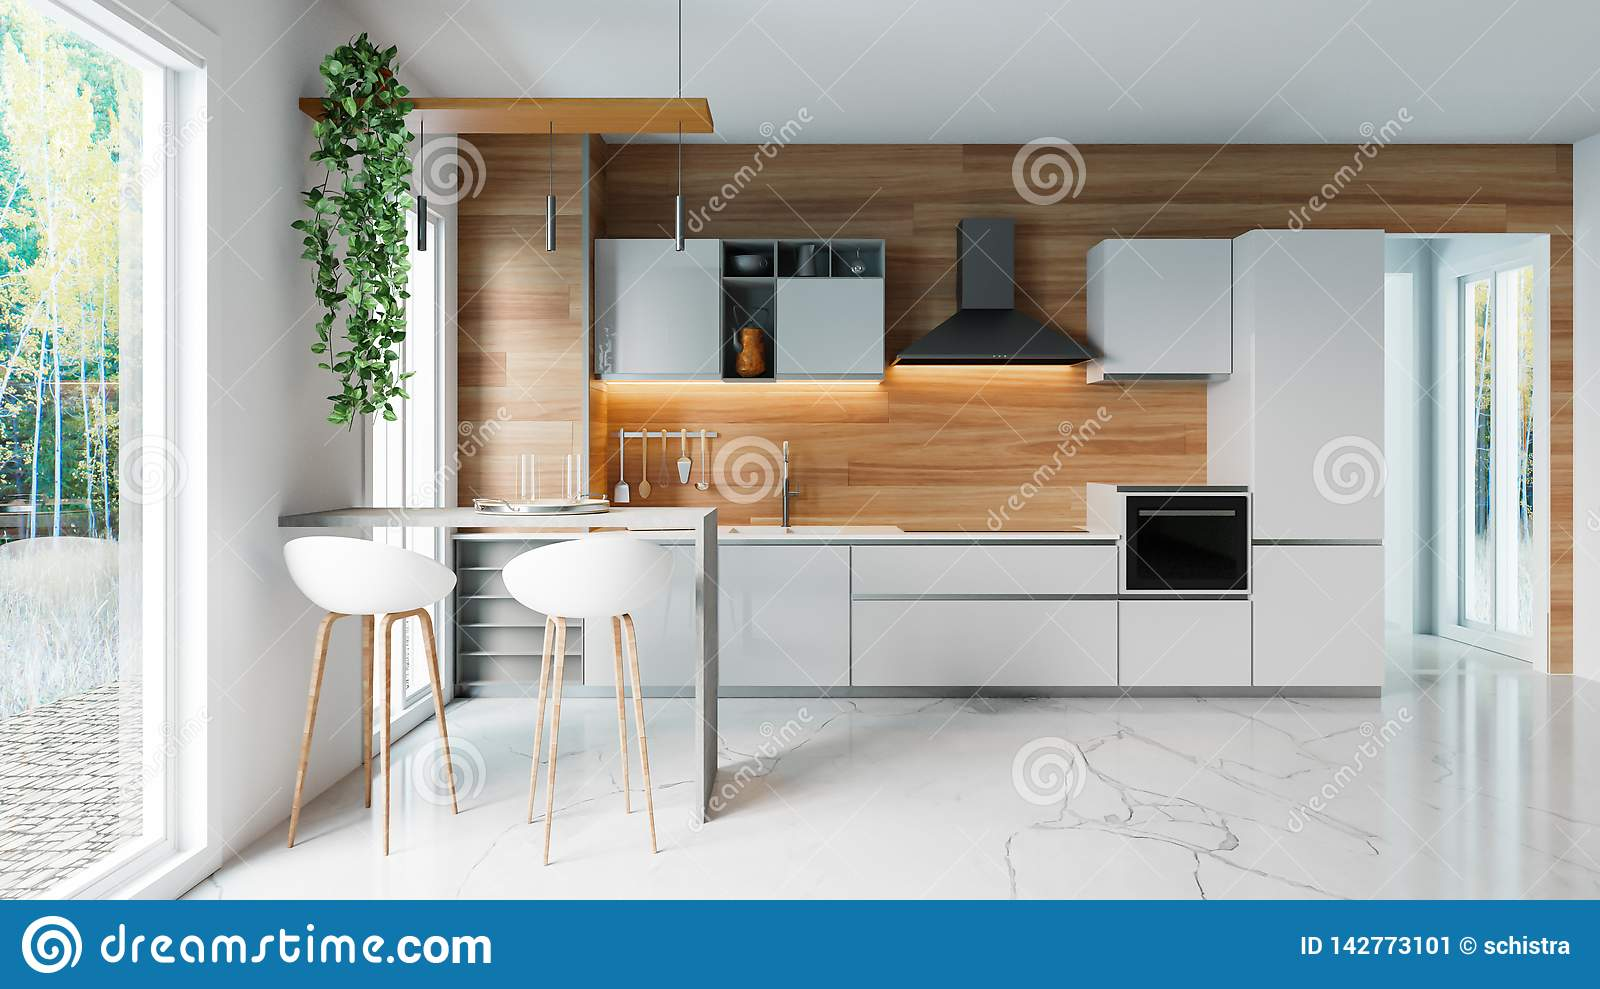 Modern White Kitchen With Wooden Wall And Marble Floor Minimalistic Interior Design Concept Idea 3d Illustration Stock Illustration Illustration Of Decoration Cooking 142773101